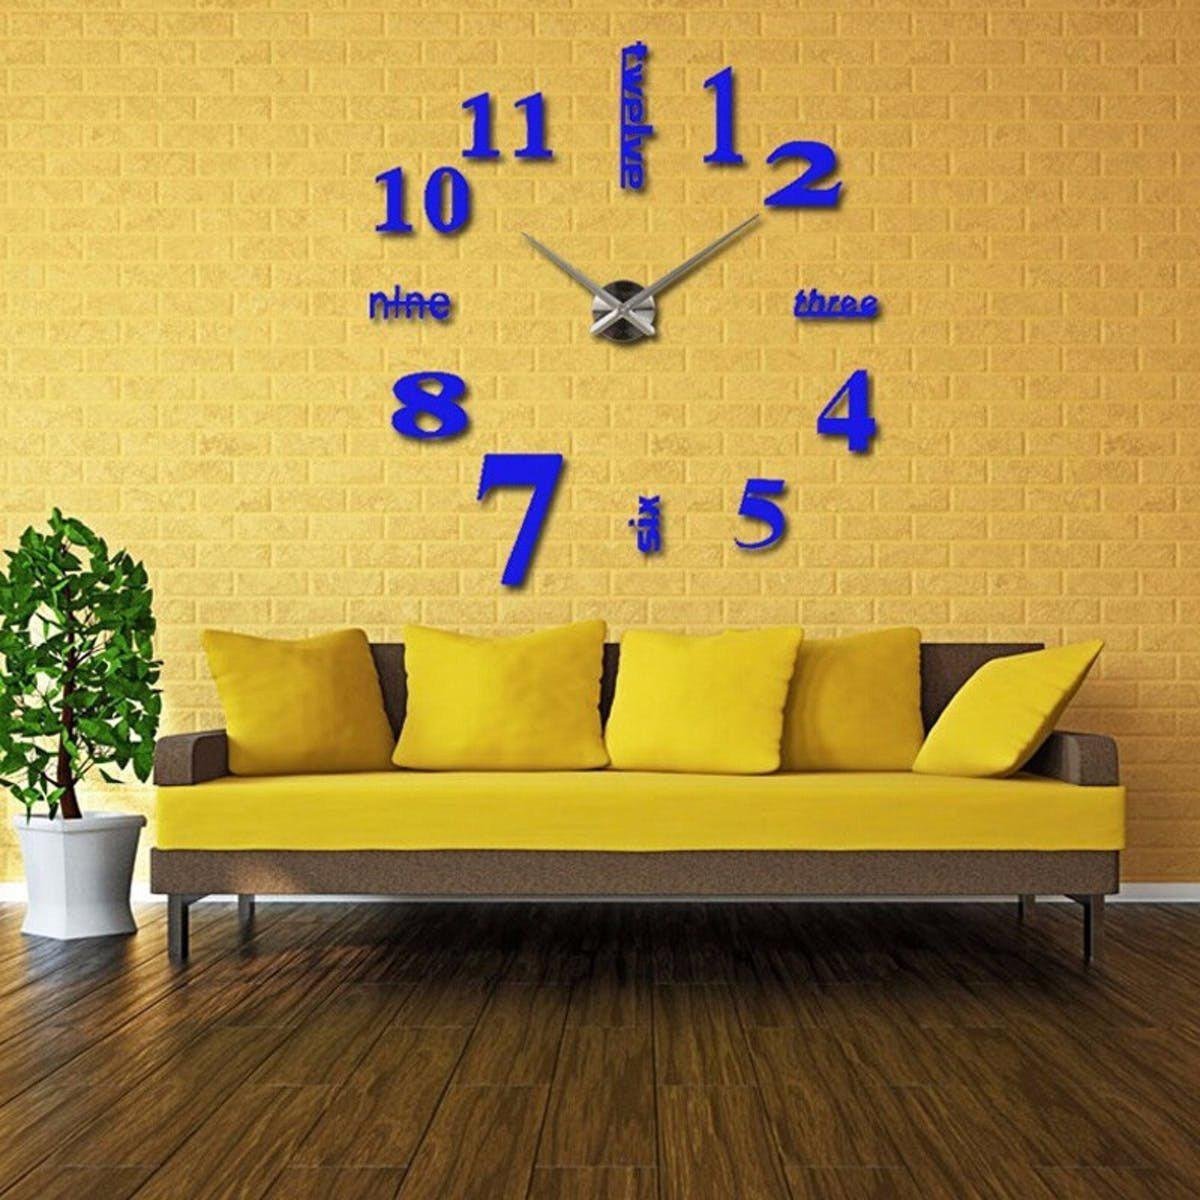 Wall Stickers Vinyl Decal Home Clock Decor Mural Art Feathers Rules ...